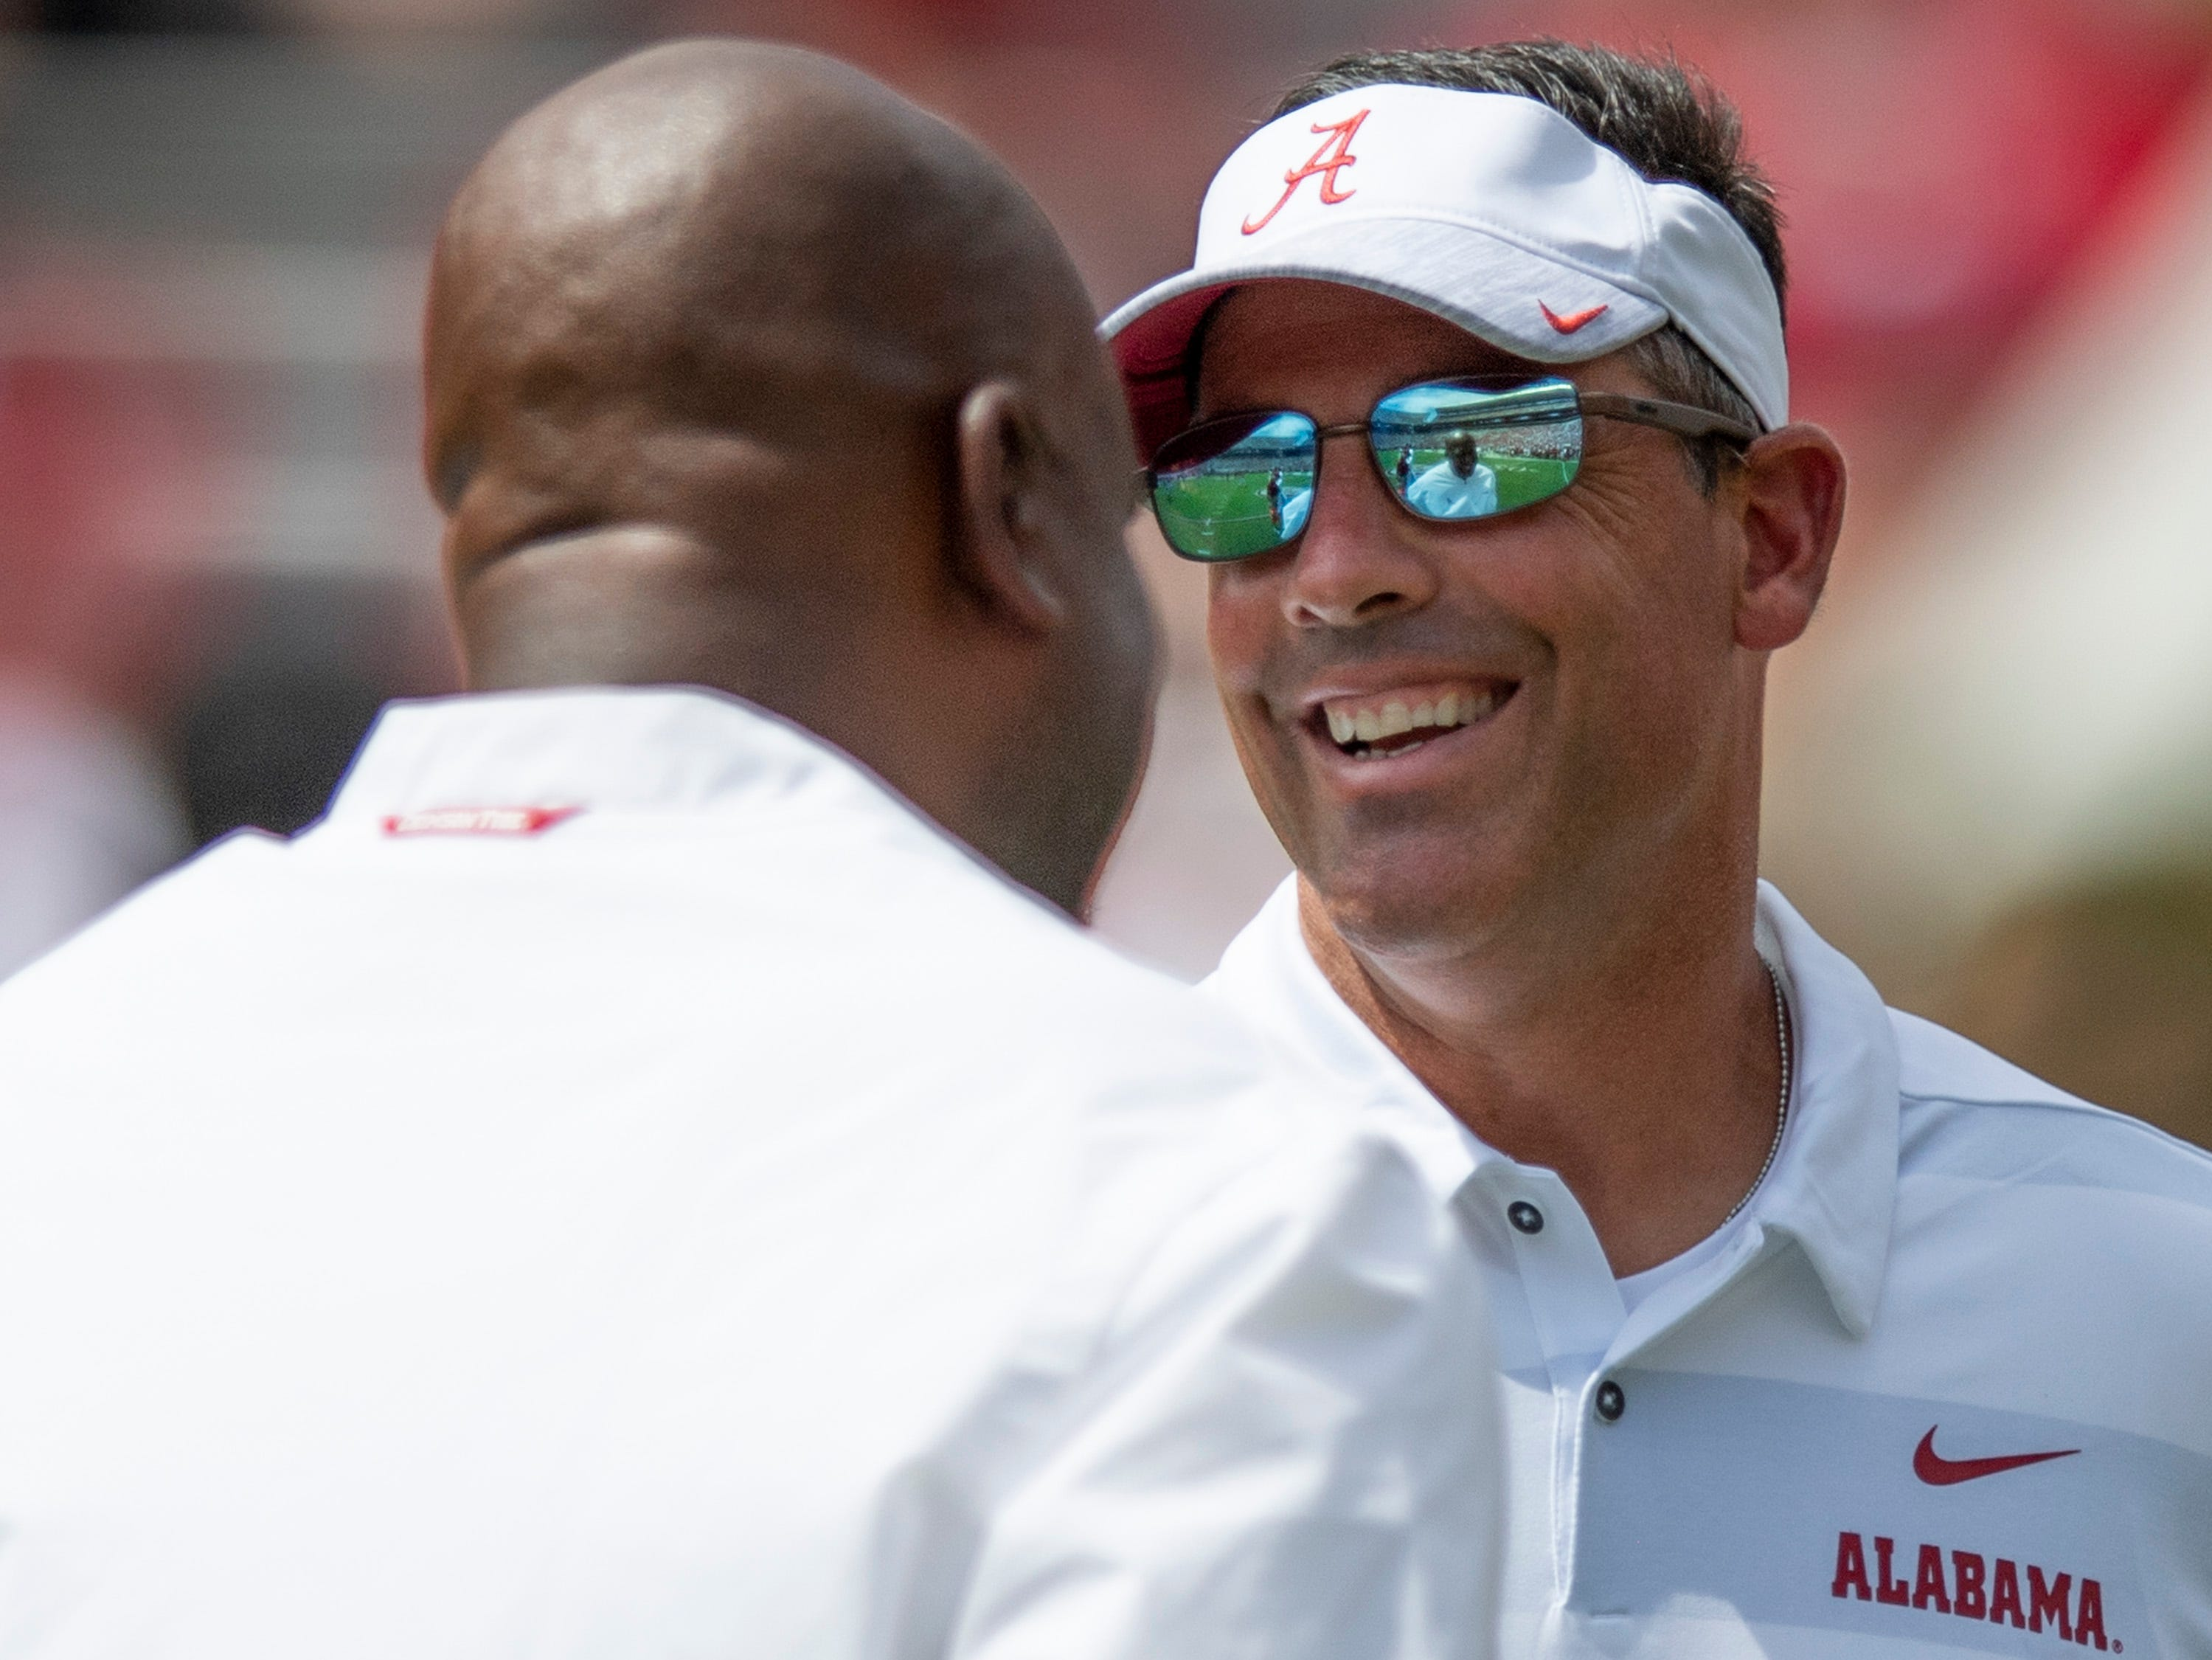 Alabama offensive coordinator Michael Locksley, left, and quarterbacks coach Dan Enos talk before the Alabama vs. Arkansas State game at Bryant Denny Stadium in Tuscaloosa, Ala., on Saturday September 8, 2018.